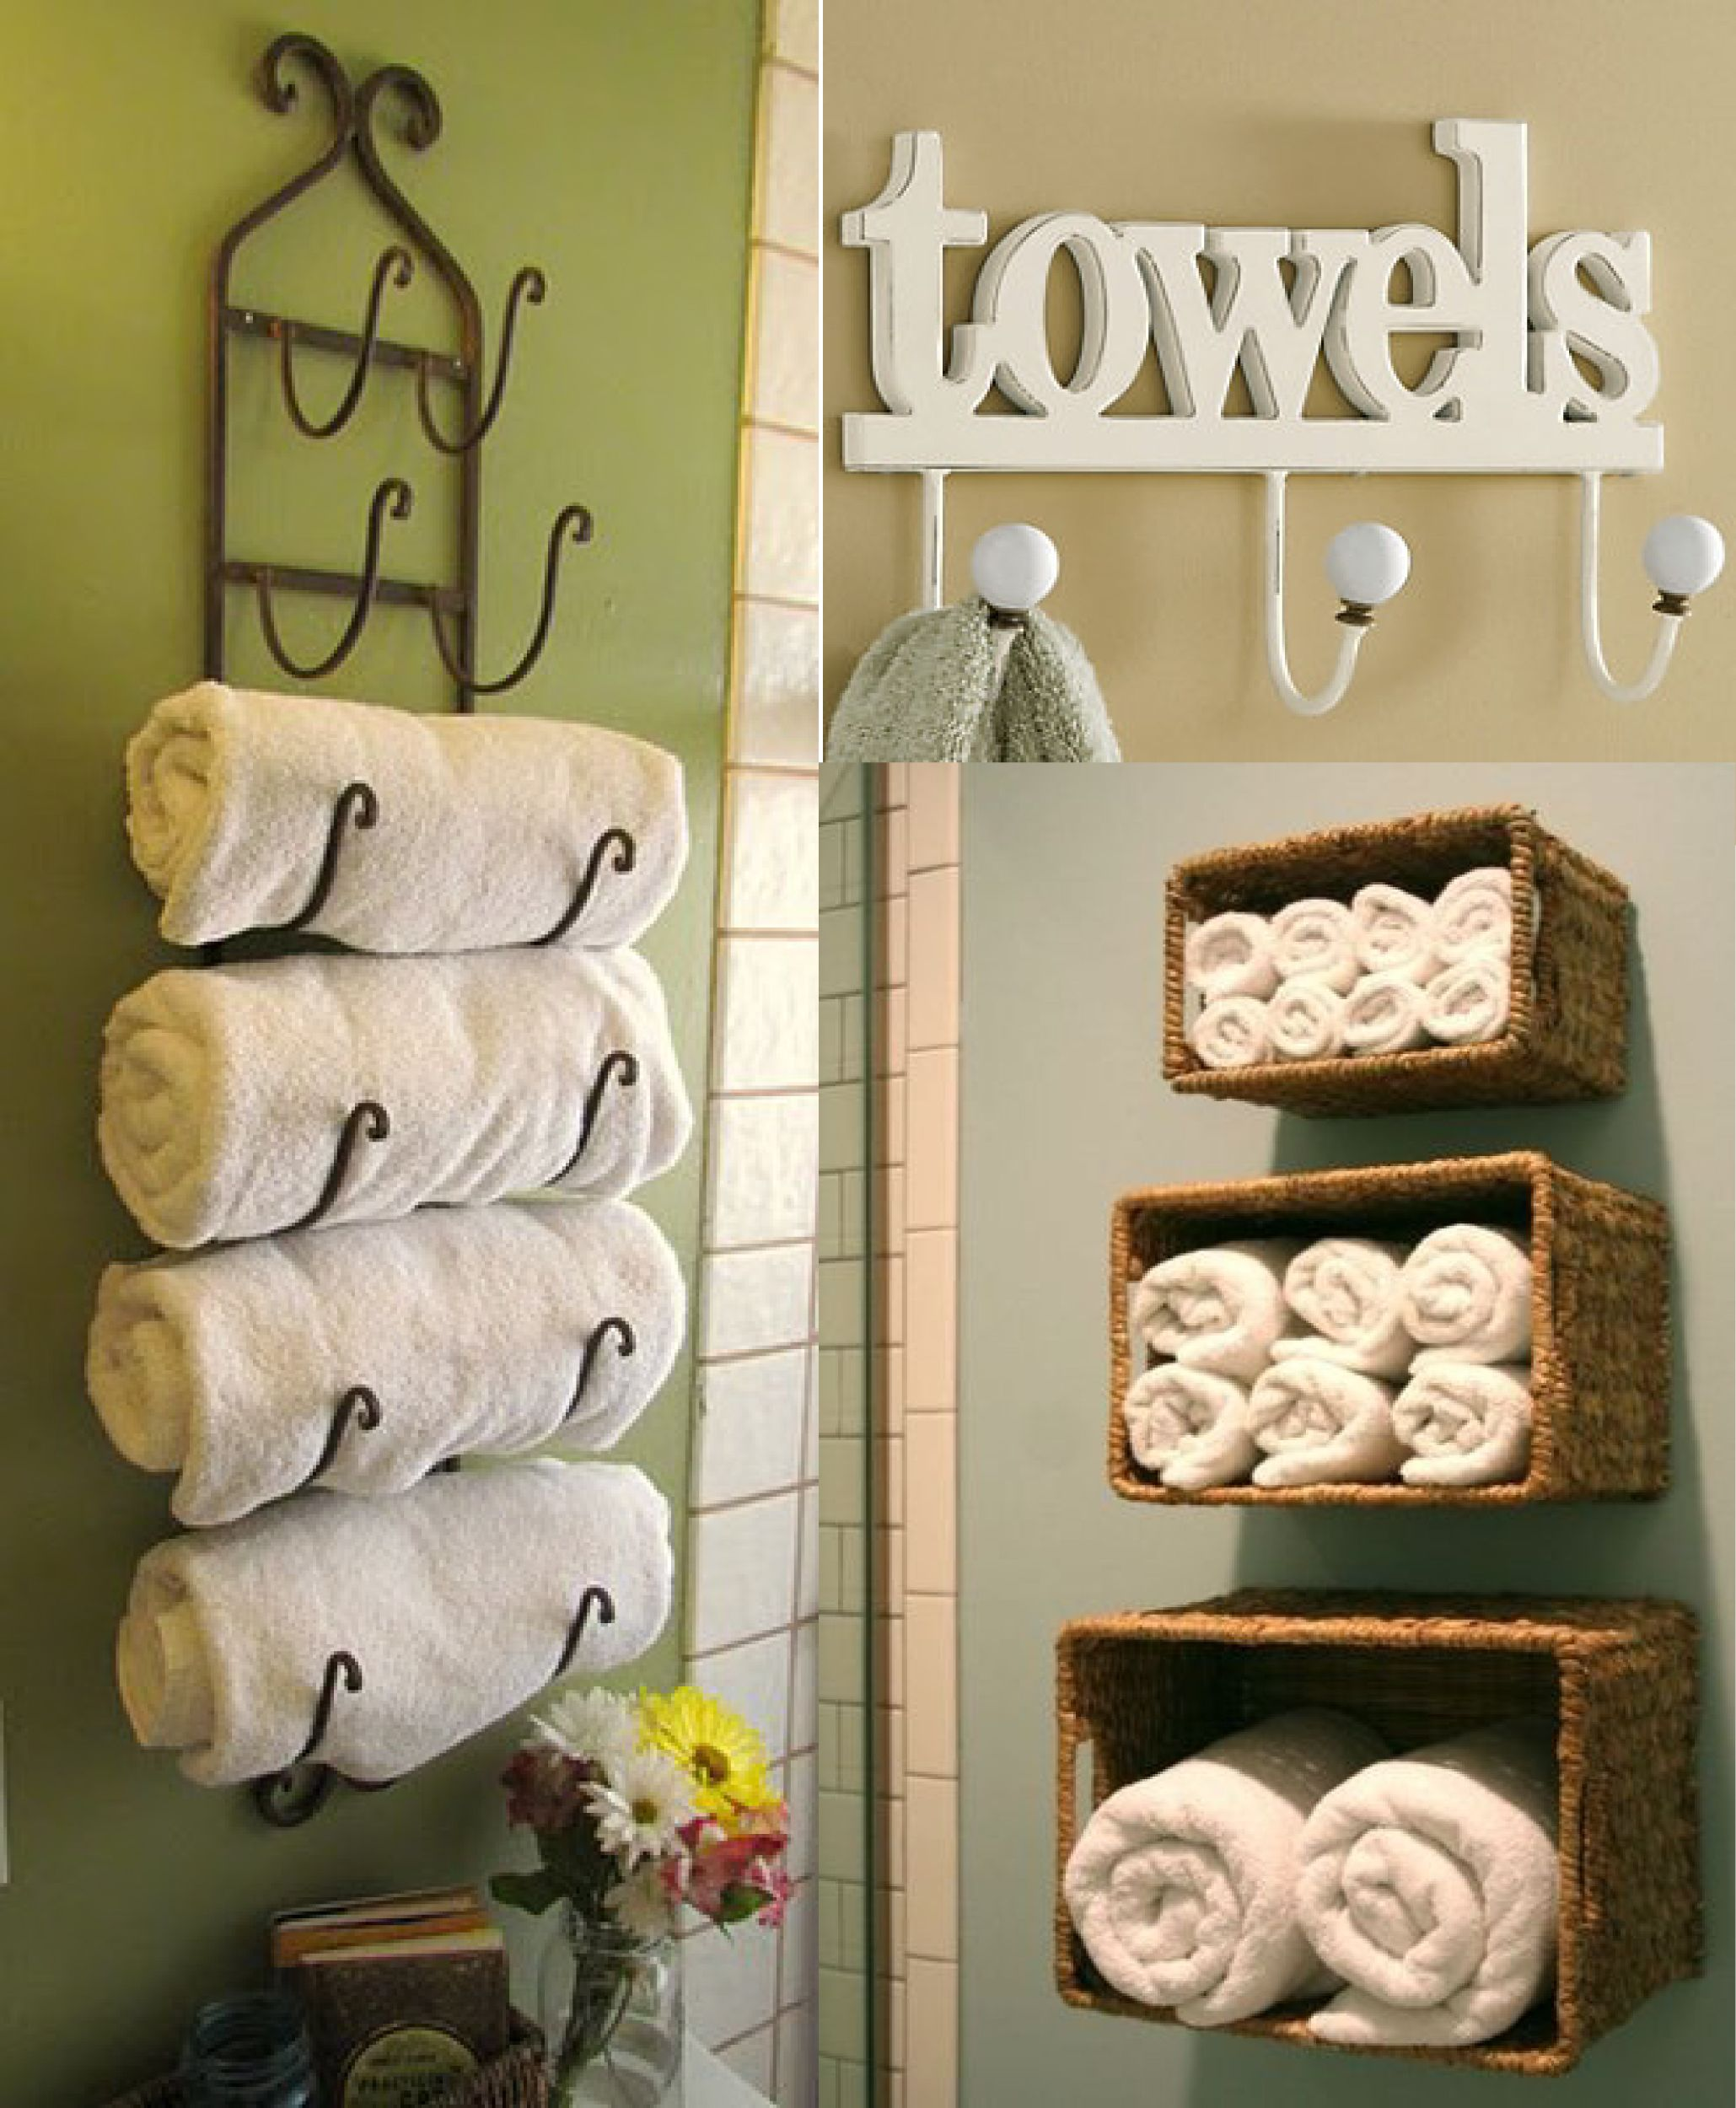 Bathroom Ideas Towel Racks bathroom storage ideas pinterest |shannon rooks | corporate